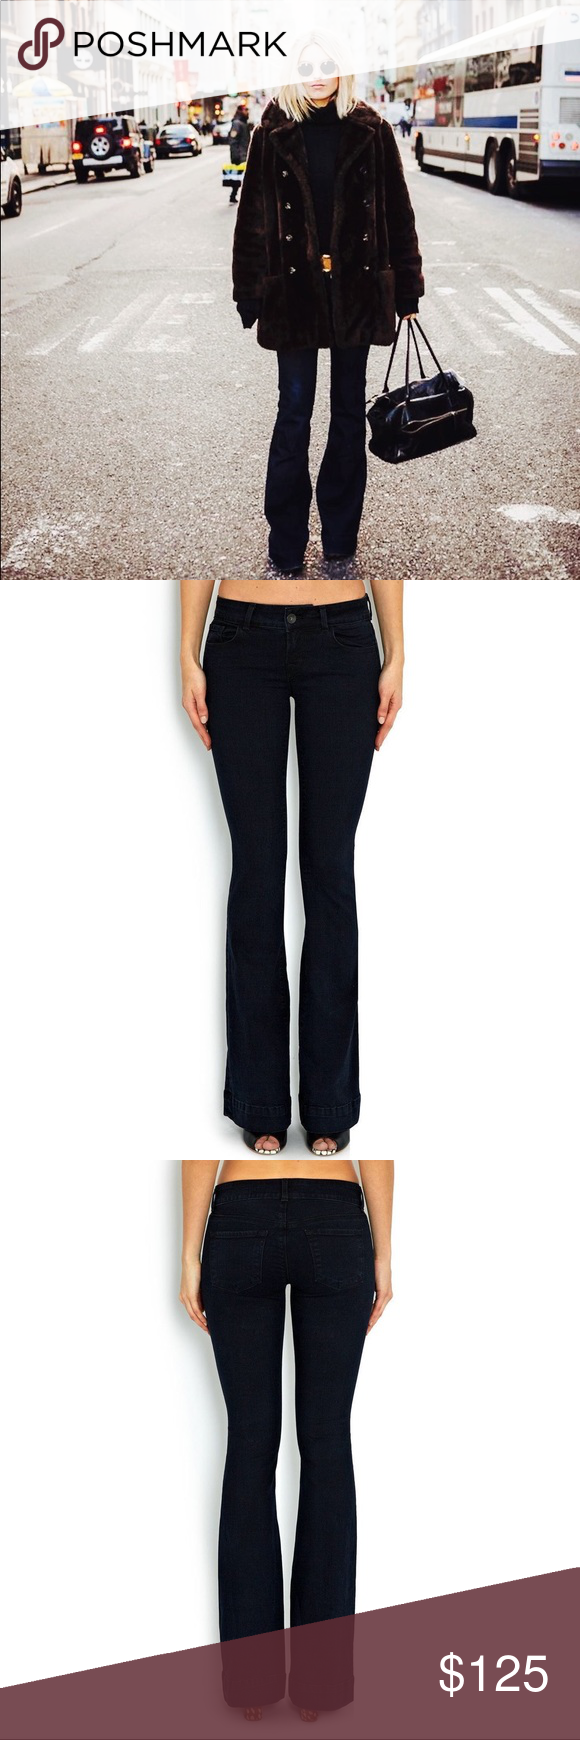 """J Brand Love Story Bell Bottom Black Jeans J Brand Black Love Story Bell Bottom Jeans, slim fit Low Rise, 22""""leg opening, narrow through the knee. Size 29. Inseam 34. 9.5"""" rise, Classic 5 pocket styling Zip fly Cotton/Spandex Made in USA Retails for $198 J Brand Jeans Flare & Wide Leg"""